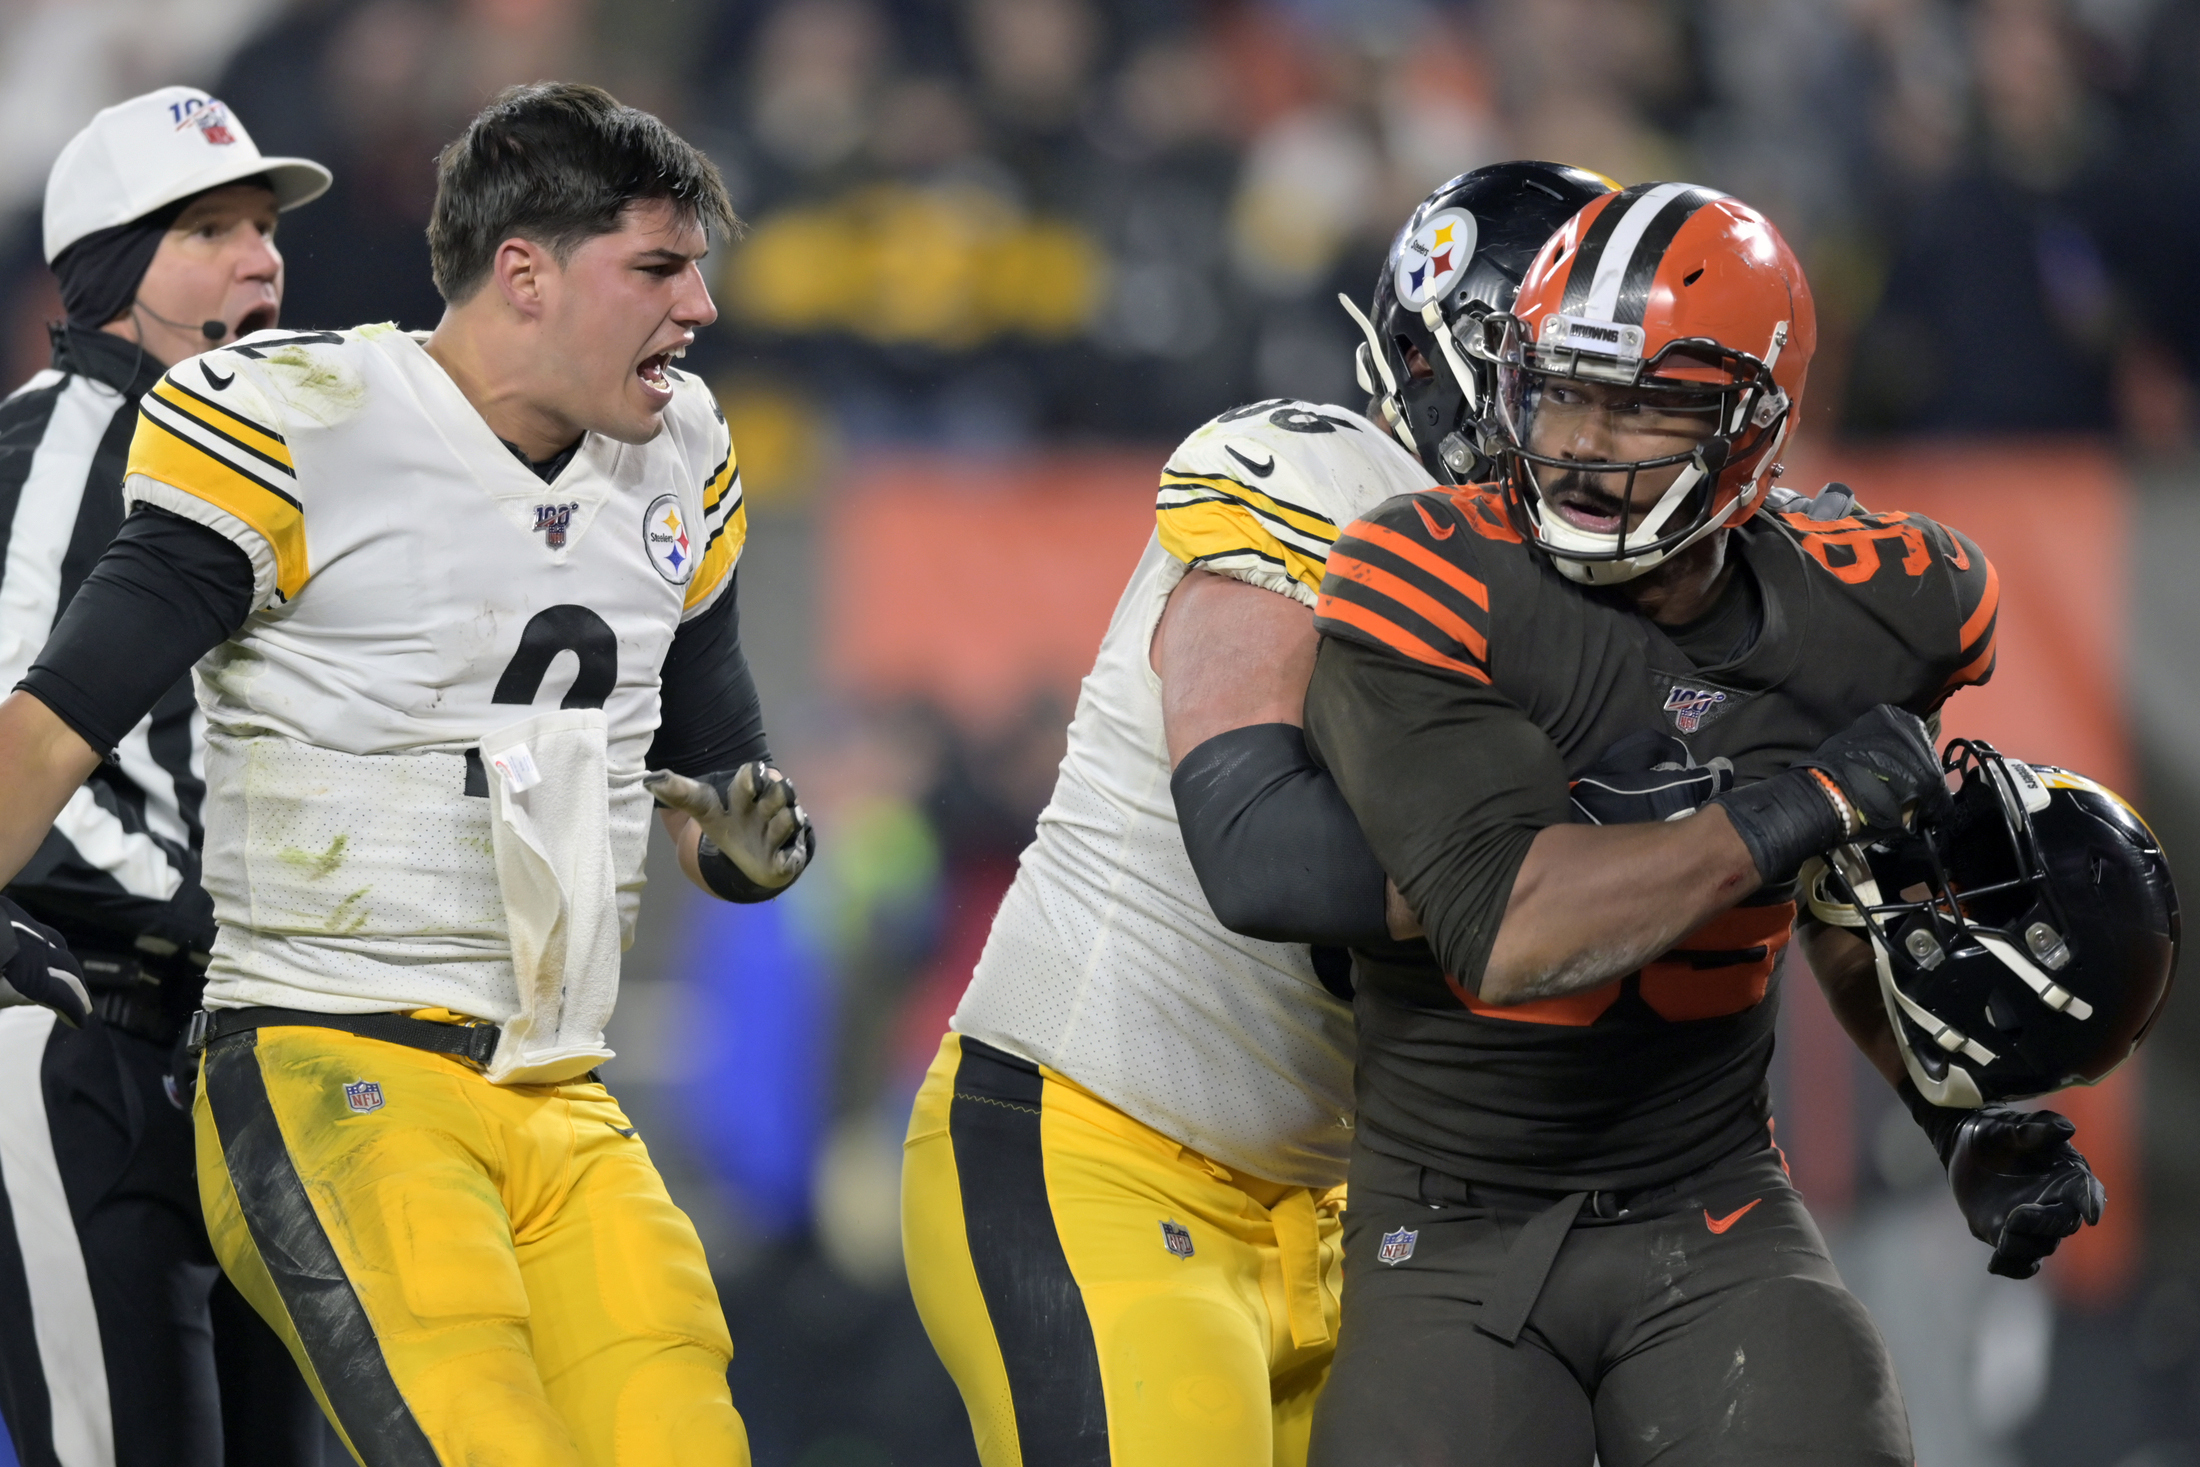 The Nfl Is Sanctioned Violence Myles Garrett Still Violated Its Codes The Washington Post